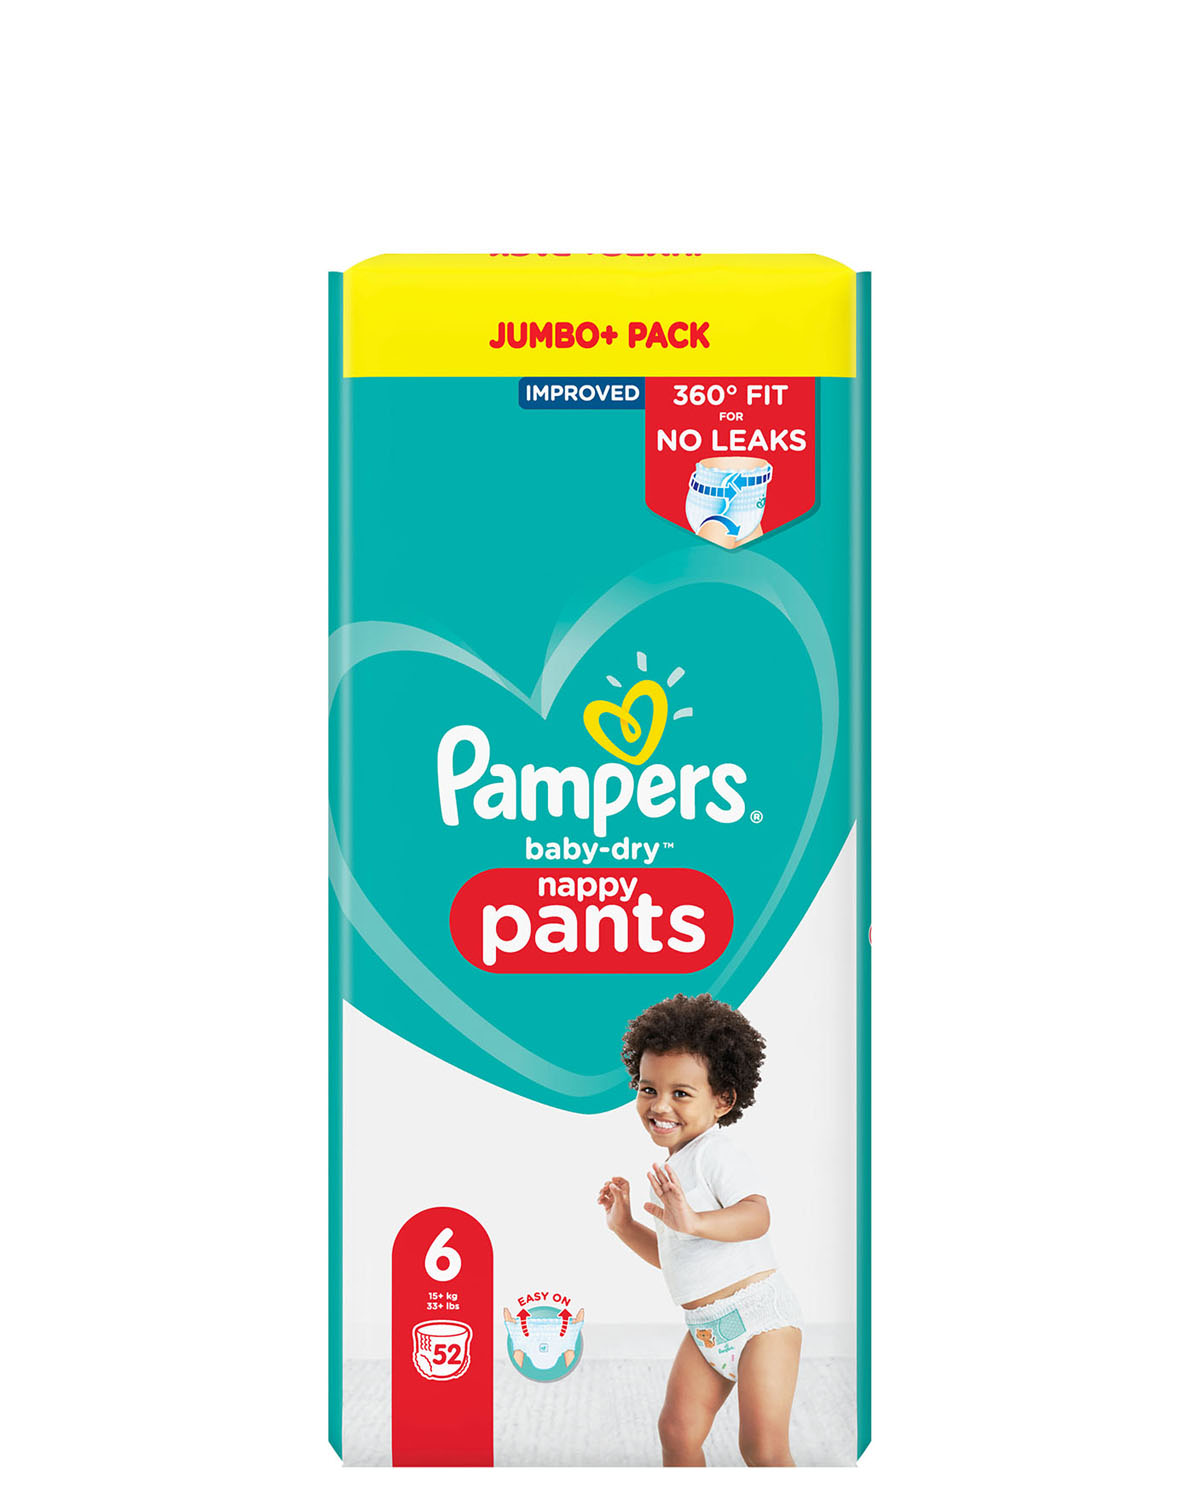 Pampers Baby Dry Pants Jumbo Cube Pack Size: 6 - 52 Nappies thumbnail